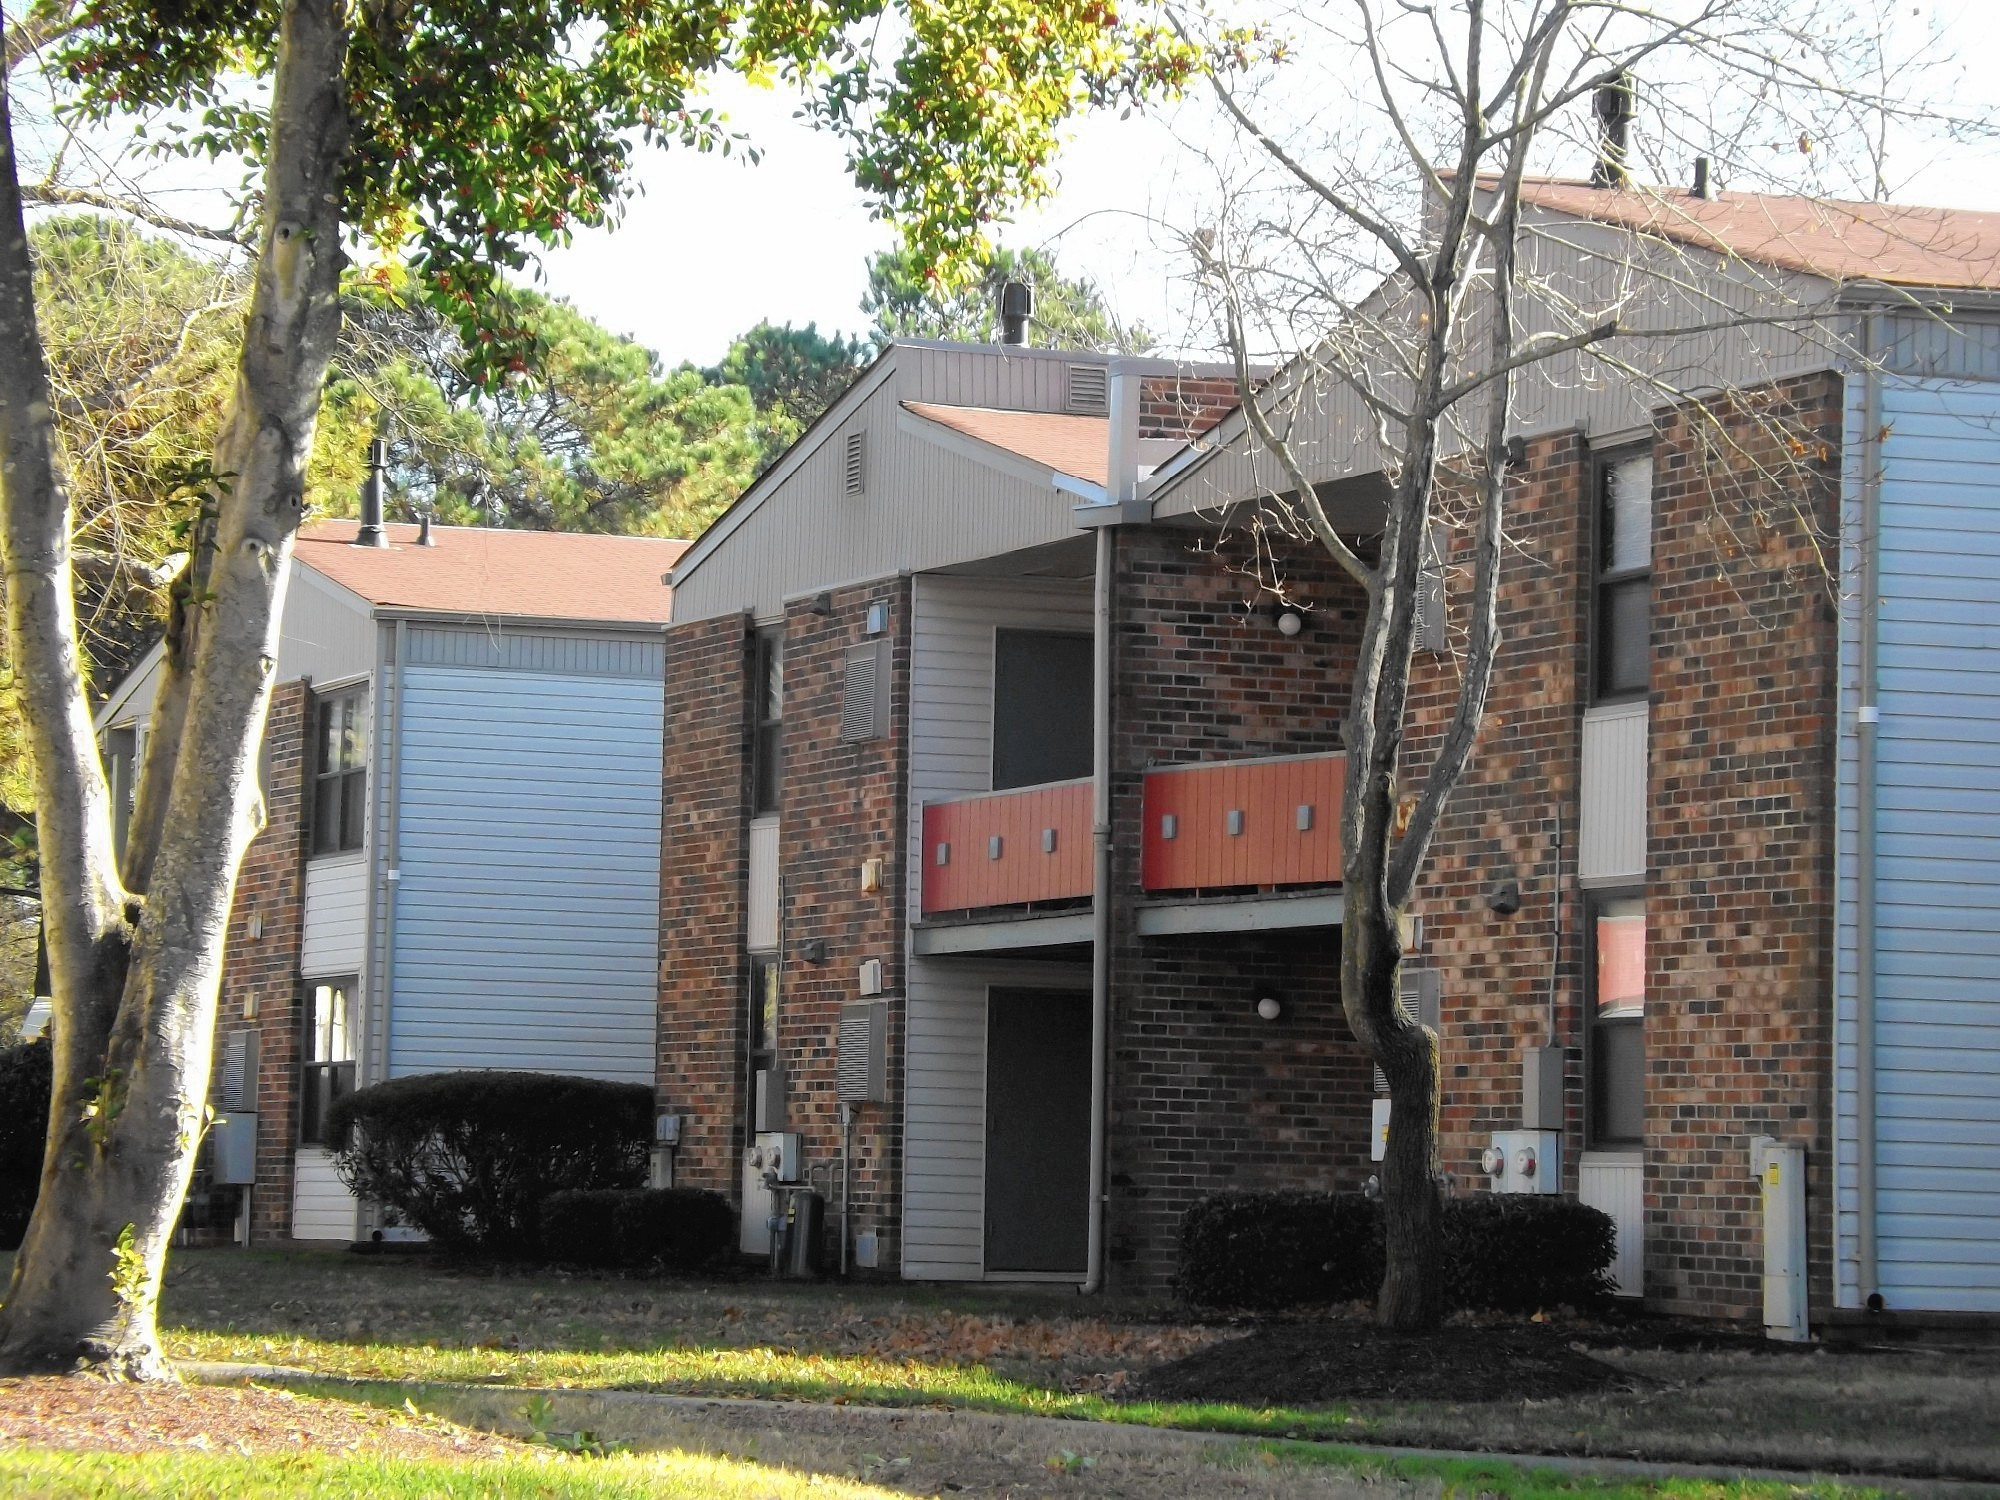 Langley Square Apartments In Hampton Sold To N Y Investors The